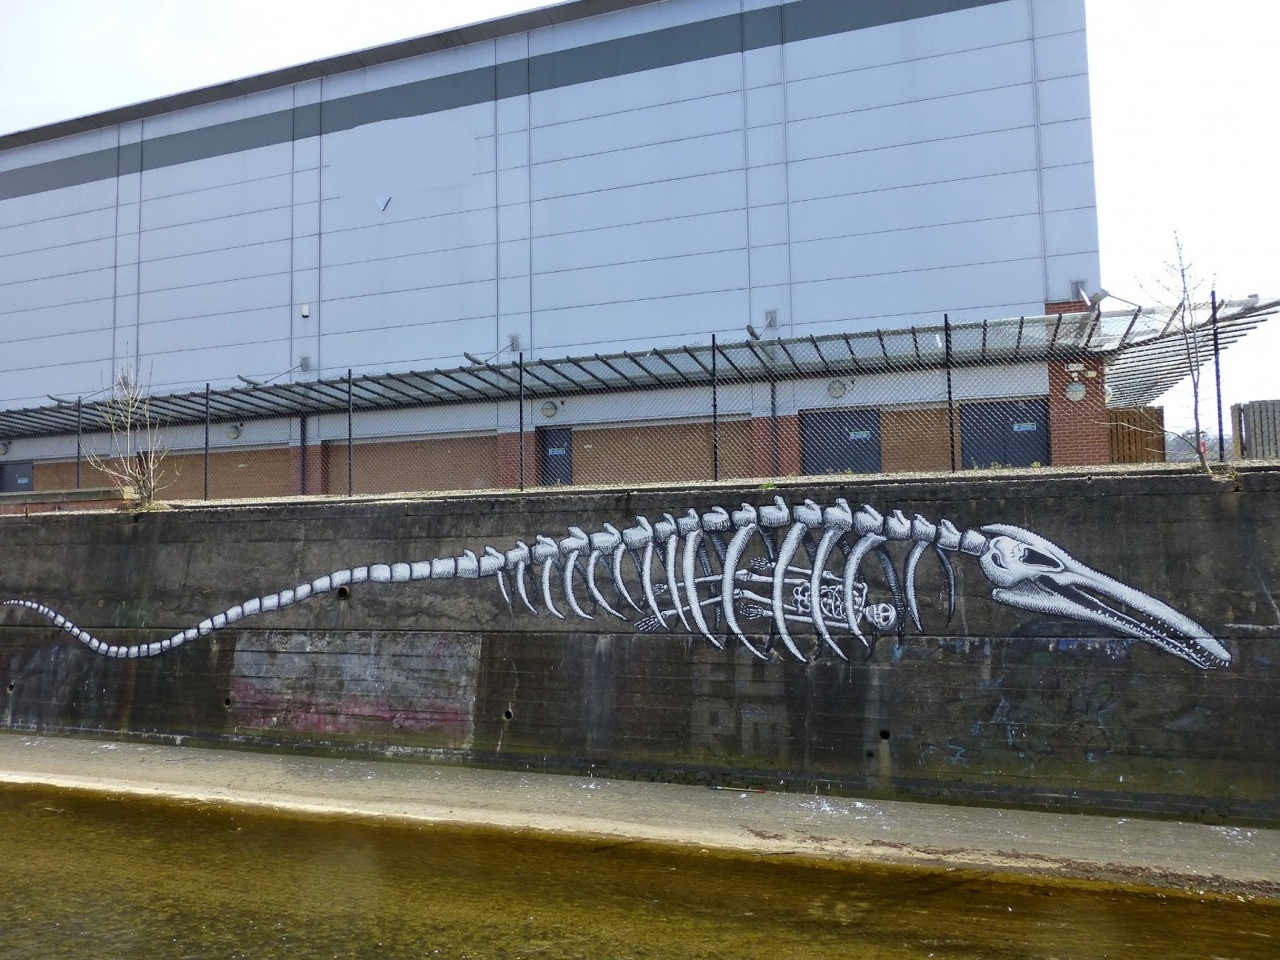 Phlegm in Sheffield.